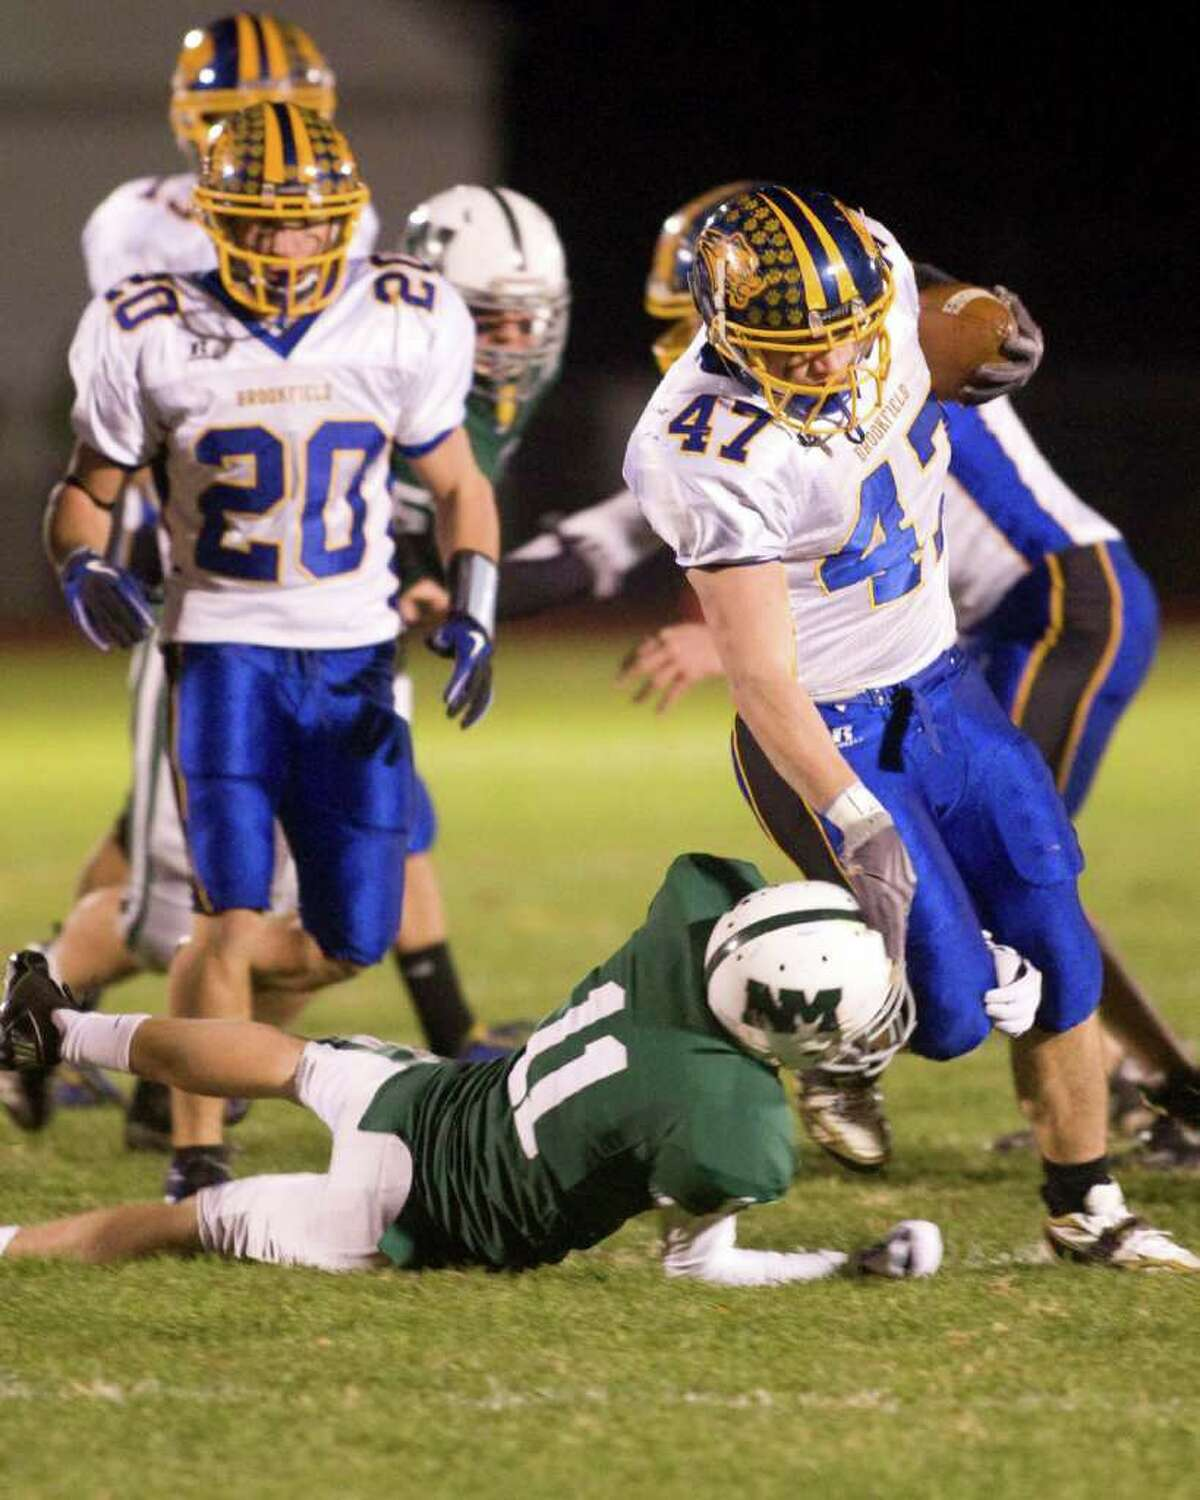 Brookfield's Matt Consalvo breaks a tackle attempt by New Milford's Patrick Jordan and scampers the rest of the way untouched for a touchdown Friday night, Oct. 22, 2010, at New Milford High School.